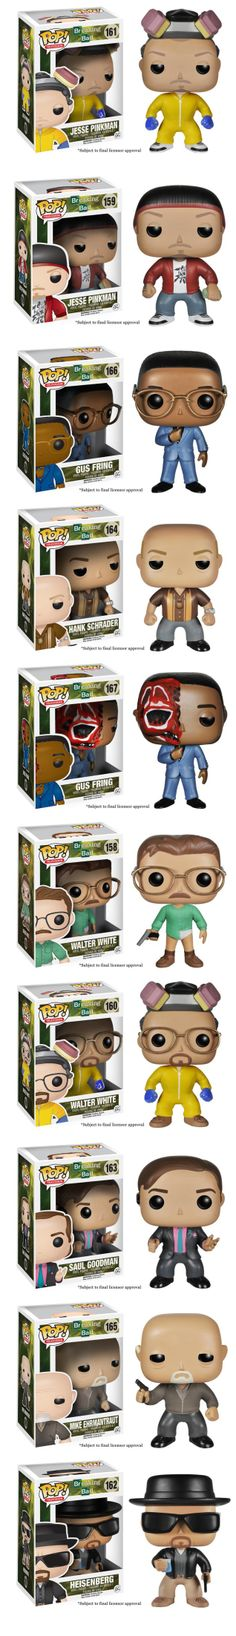 Funko Announces Breaking Bad Pop! Vinyl Figures Breaking Bad is so popular that it was only a matter of time before Funko put their eyes on the blue crystal prize. They've just announced a series of ten Pop! vinyl figures featuring a few versions of Walter White, Jesse Pinkman, Gus Fring, Saul Goodman, and more. They're still waiting on final licensor approval, but the toys will most likely look like the cute versions you see here.